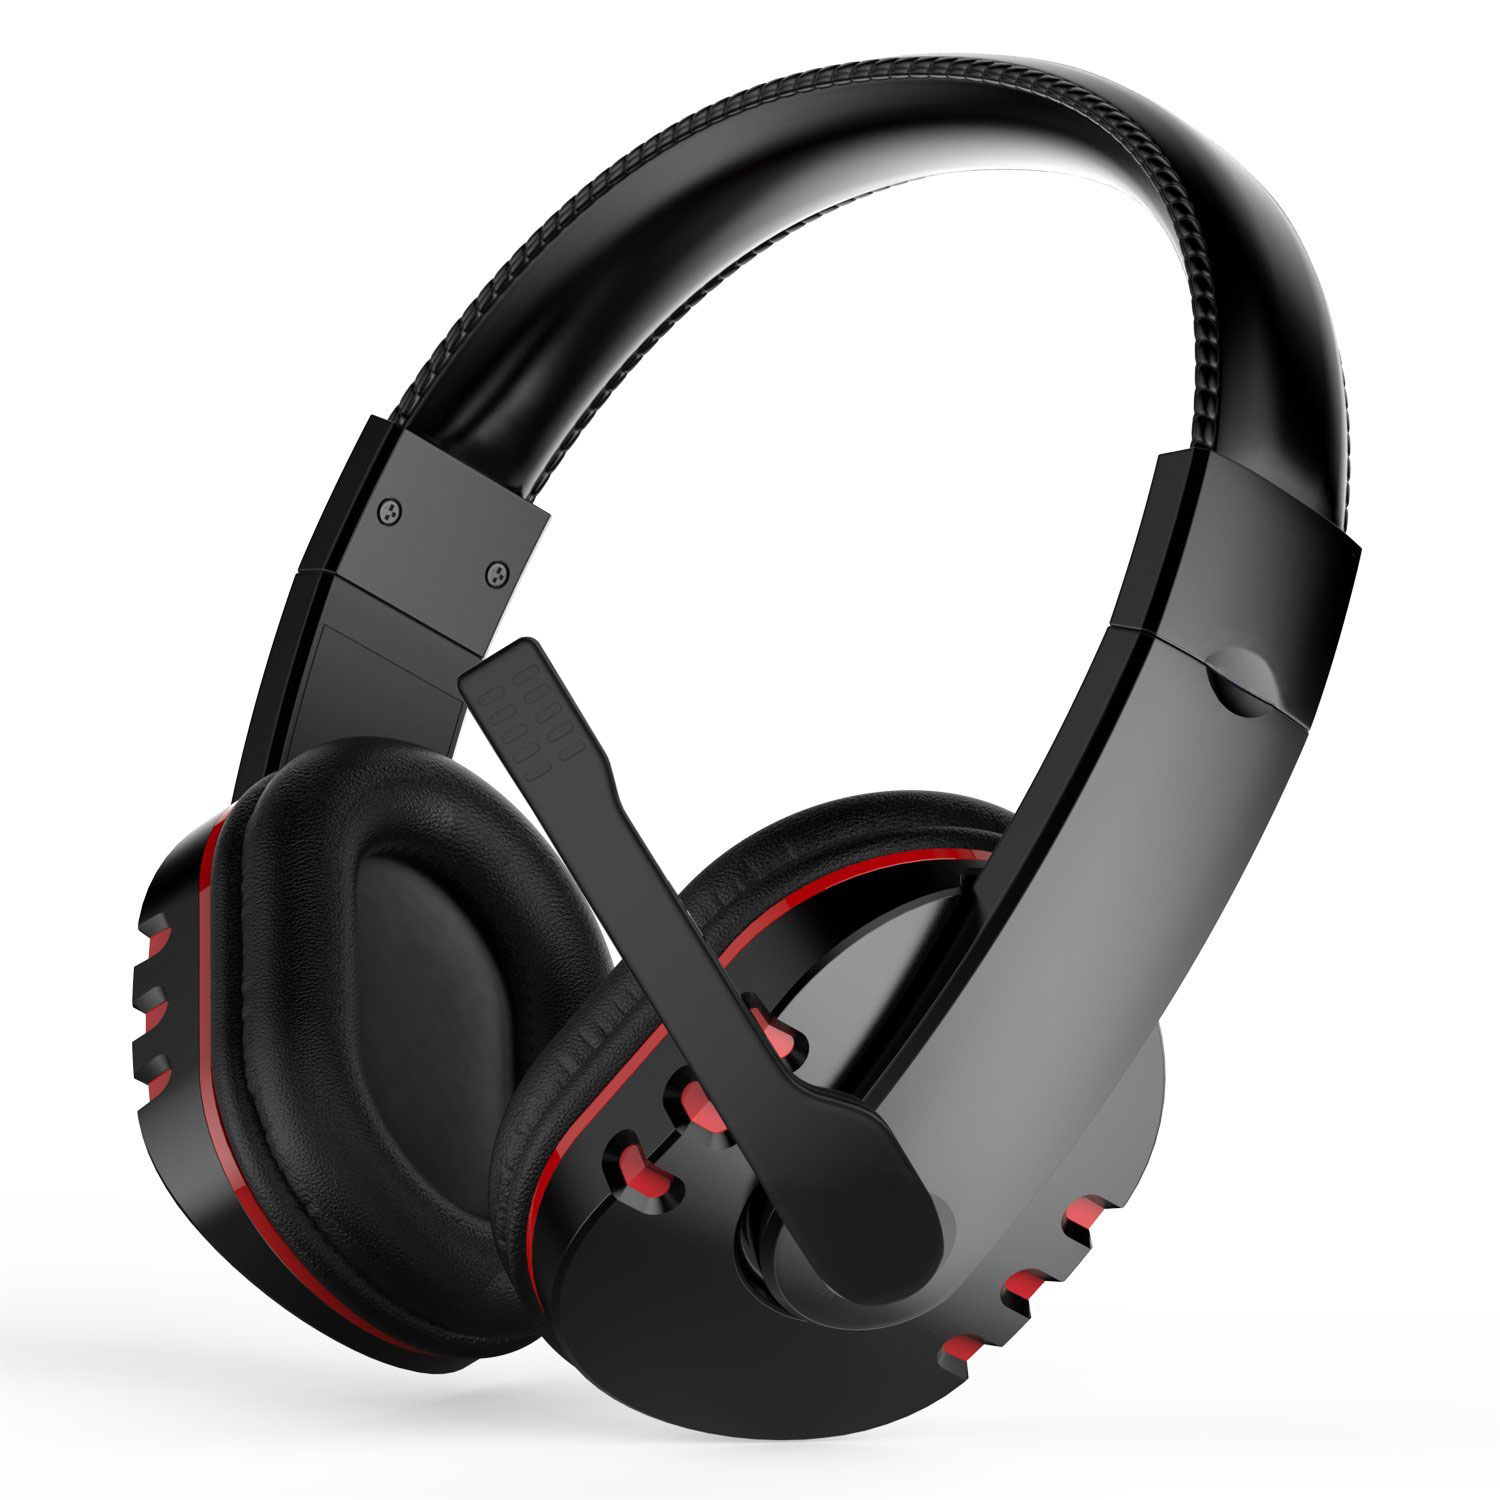 hight resolution of stereo gaming headset for ps4 xbox one pc noise cancelling over ear headphones with mic bass surround soft memory earmuffs for laptop mac nintendo